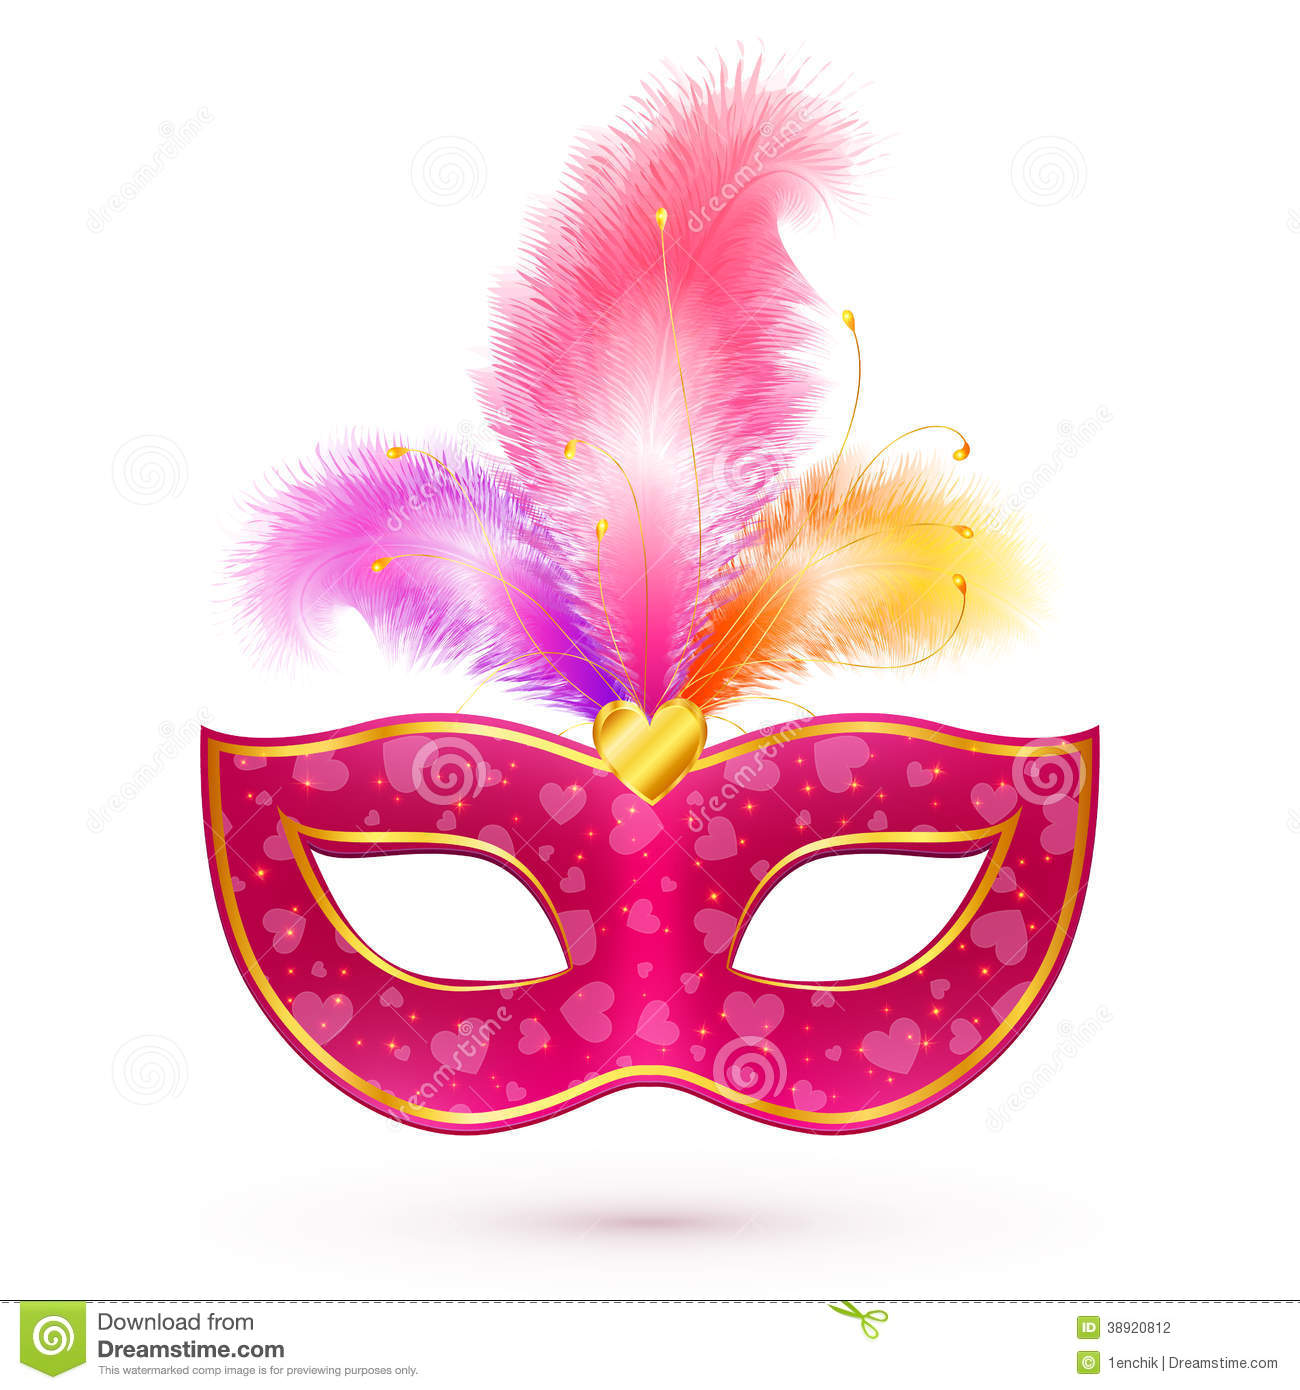 pink carnival mask with feathers stock vector image no talking clip art image no talking back clipart